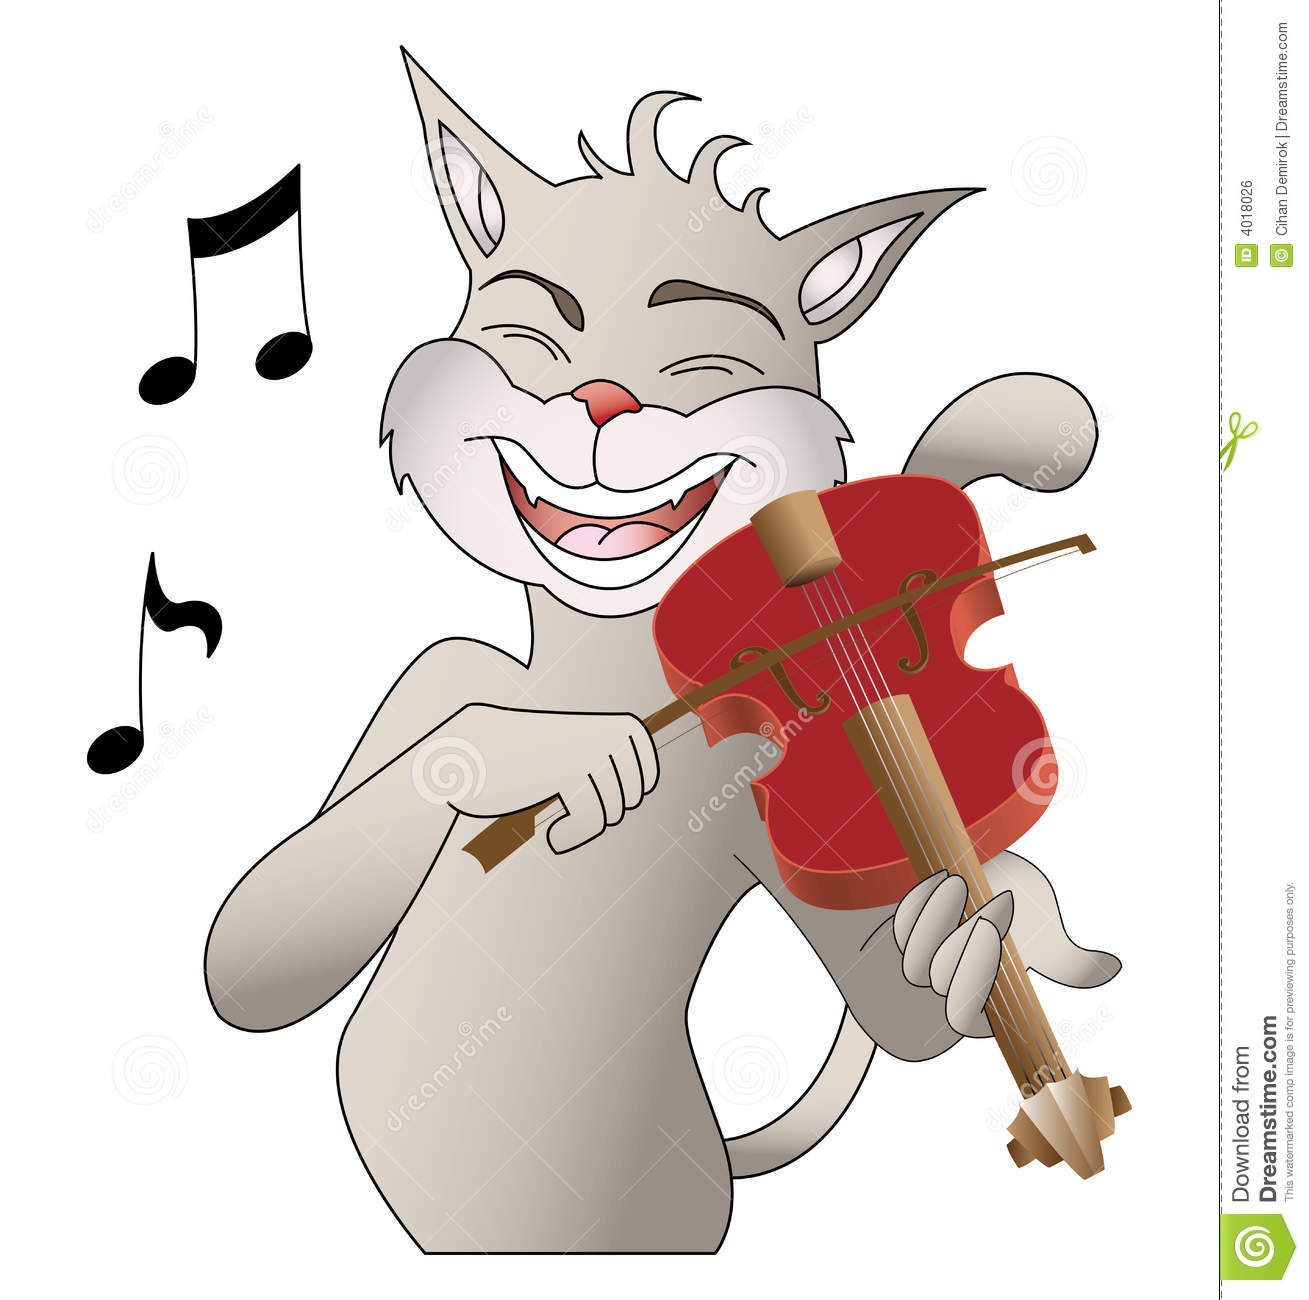 Singing Cat Royalty Free Stock Image   Image  4018026